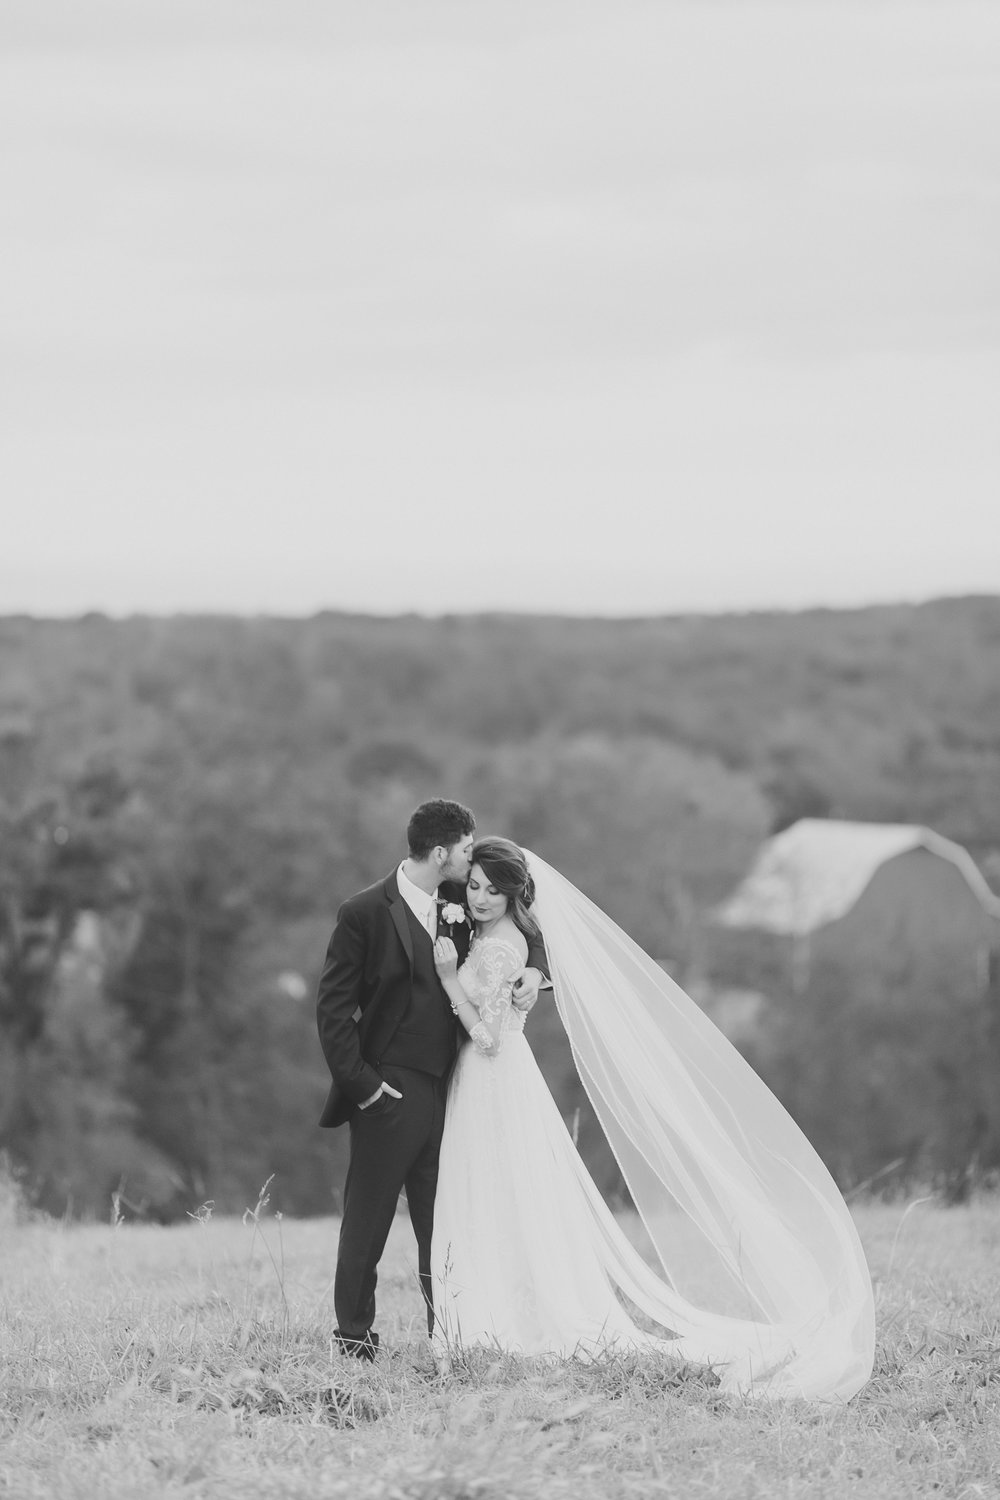 MissouriRusticWedding_StLouisWeddingPhotographer_AliciaDan_CatherineRhodesPhotography-4523-Edit.jpg